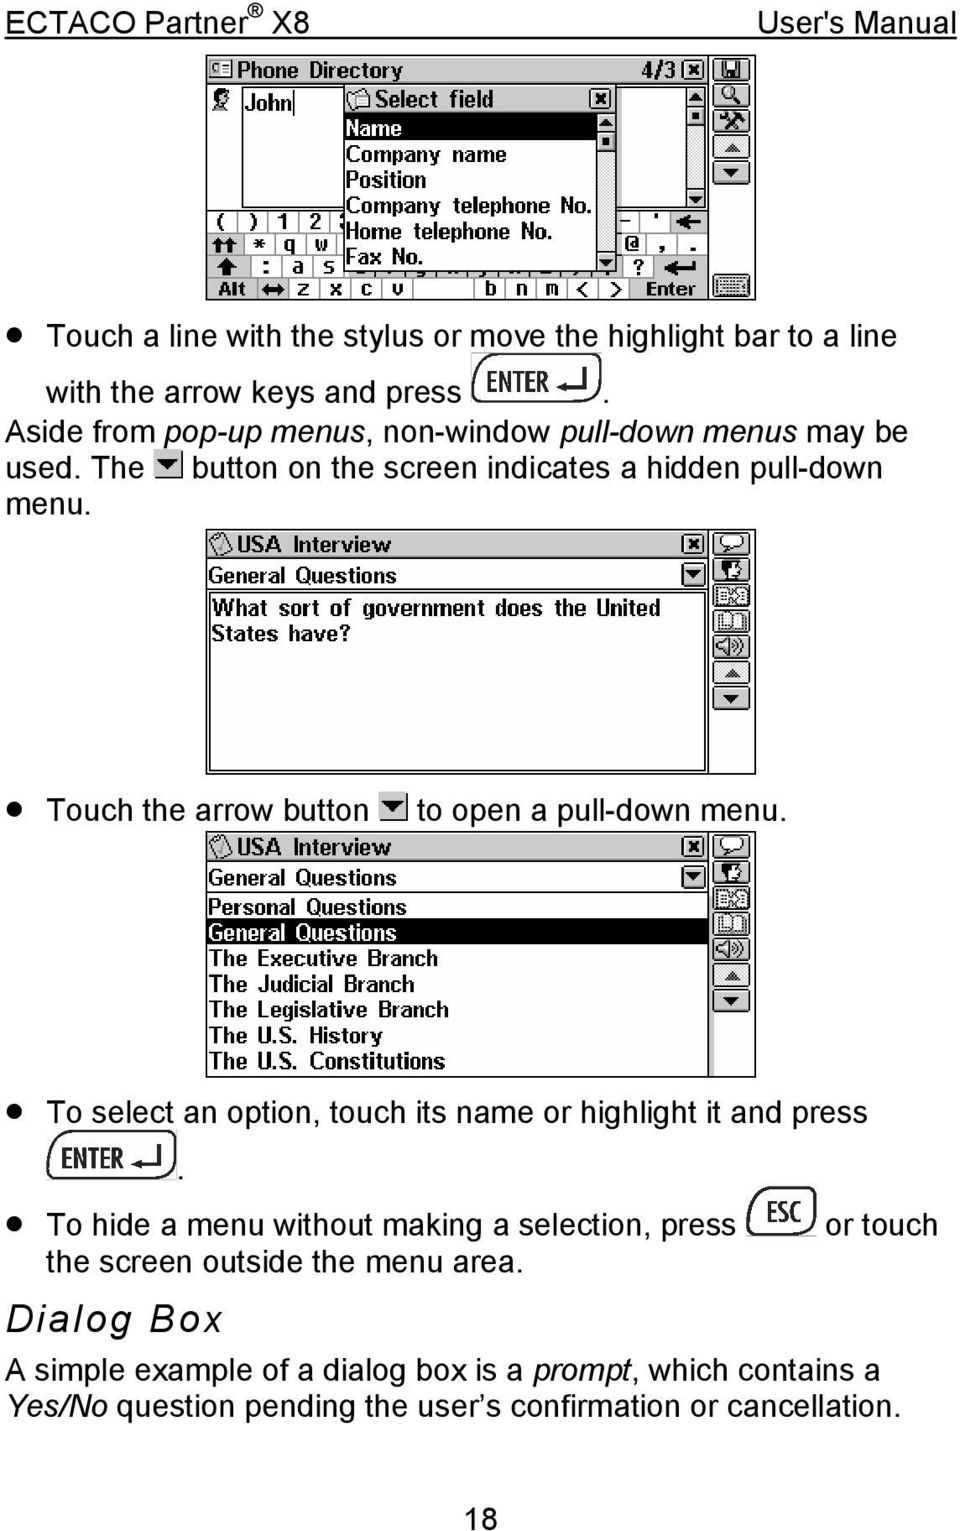 Touch the arrow button to open a pull-down menu. To select an option, touch its name or highlight it and press.